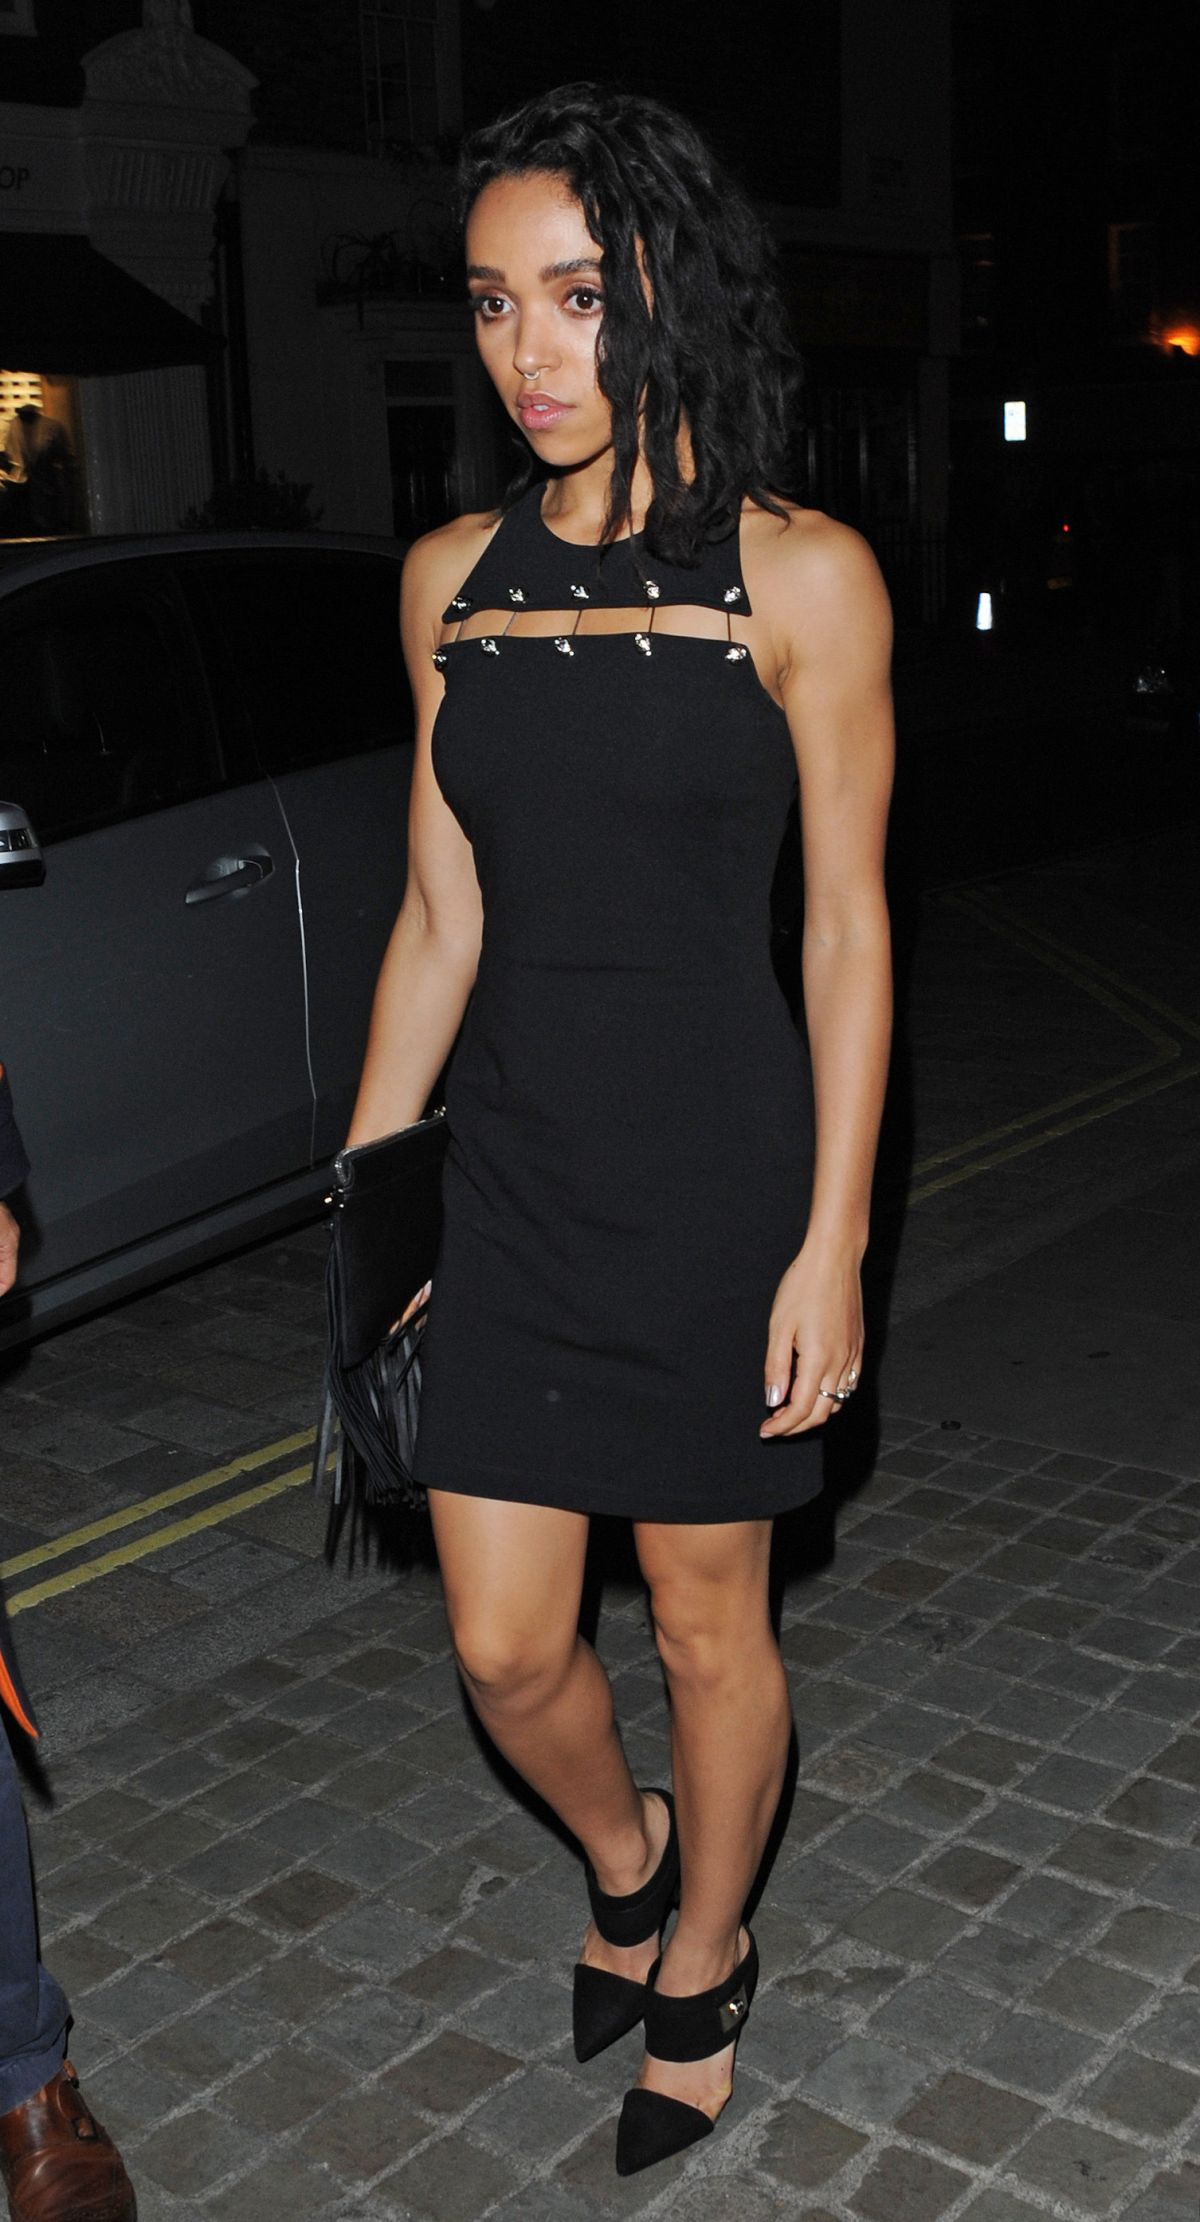 FKA TWIGS at Chiltern Firehouse in London 09/19/2015